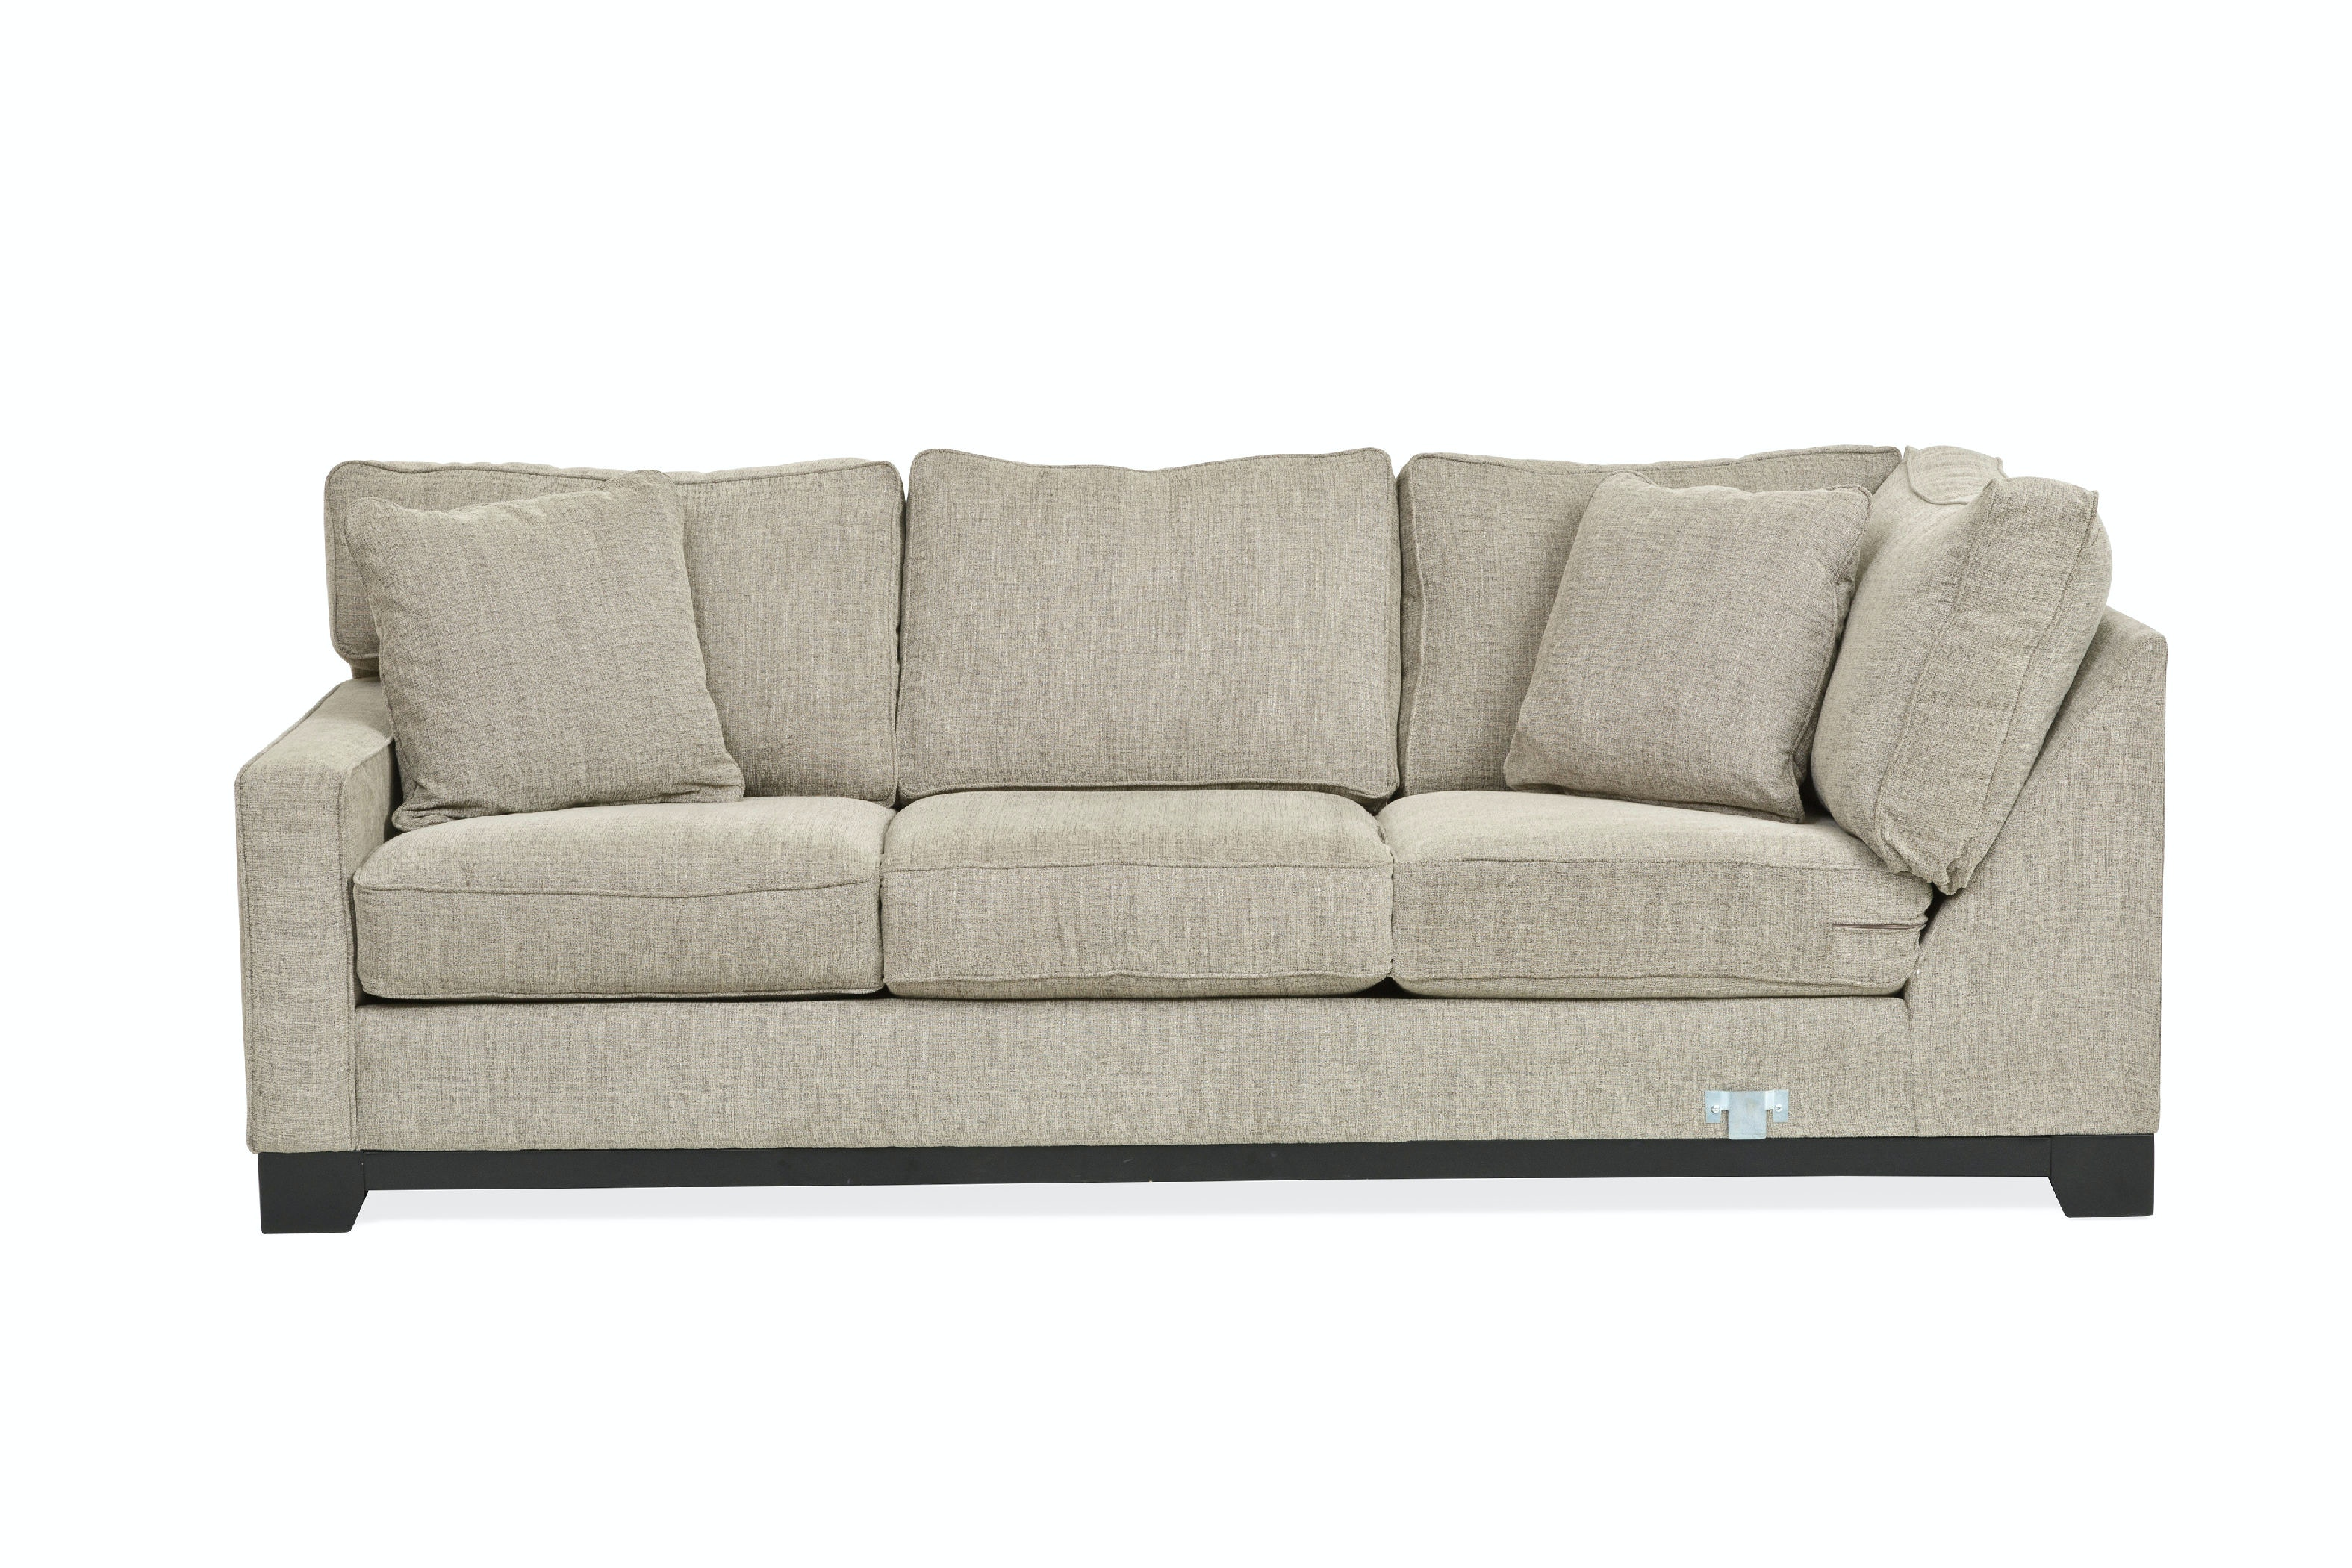 gemini 2piece sectional kt14175 - 2 Piece Sectional